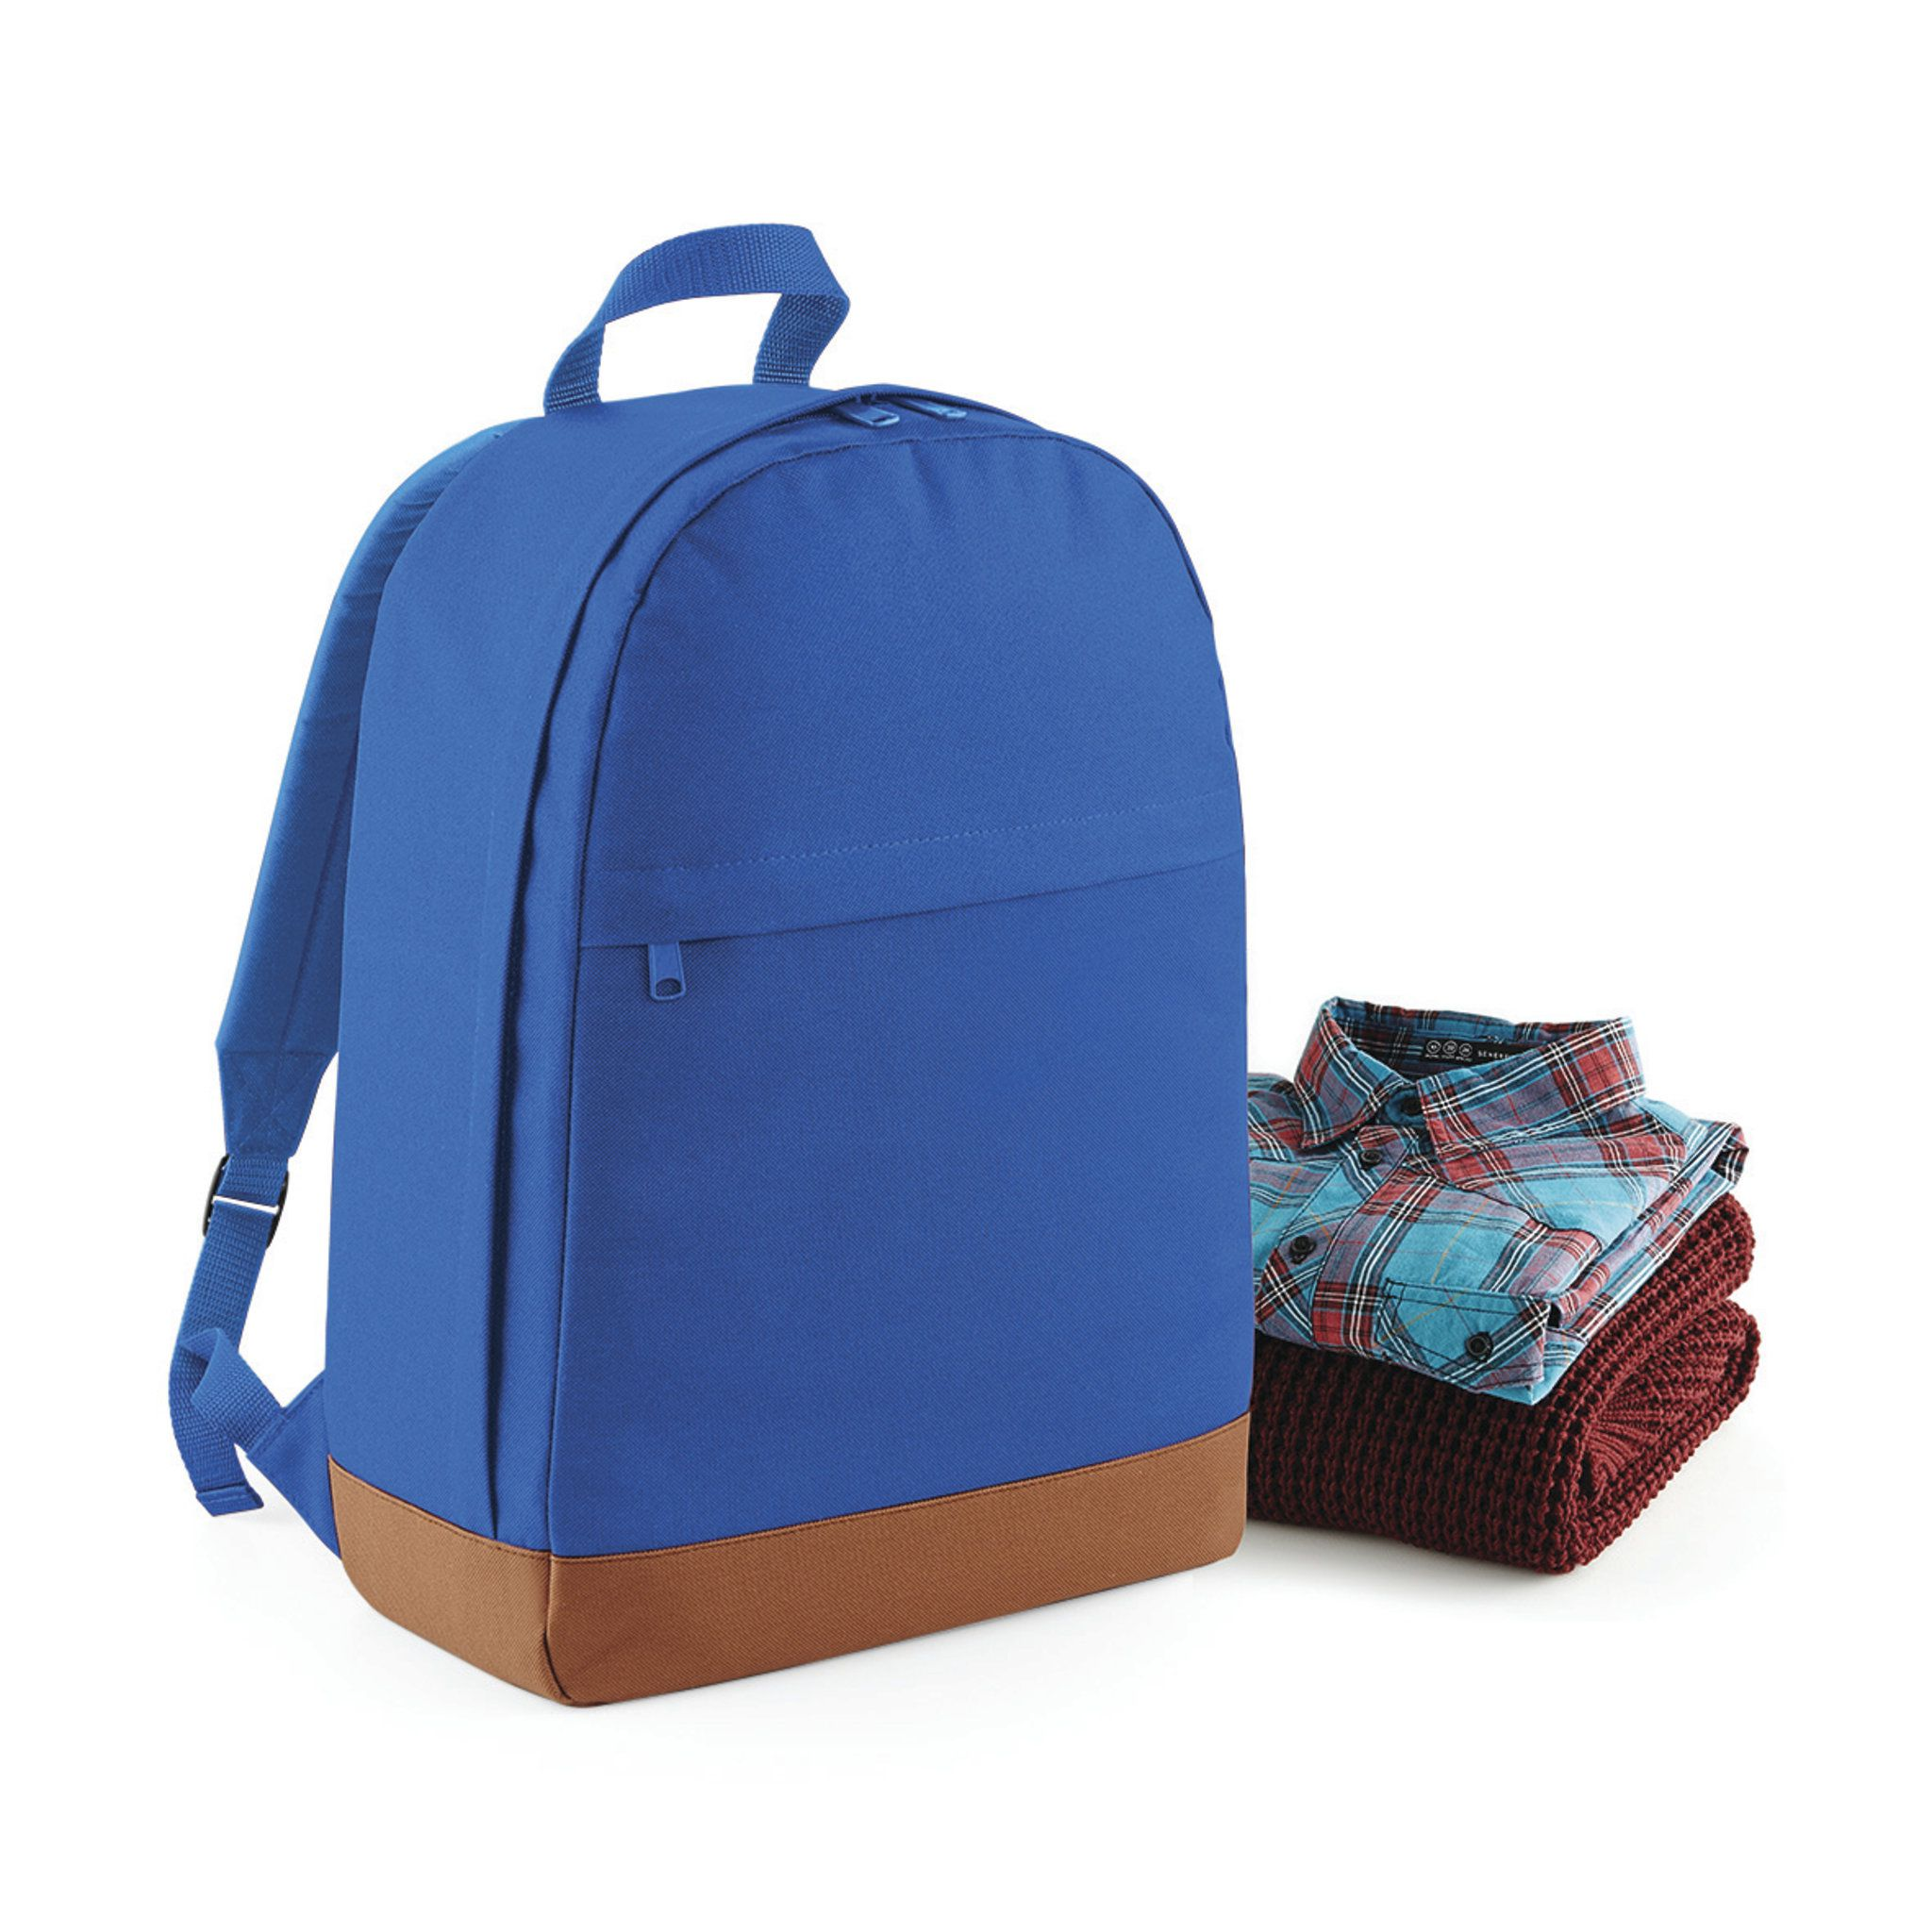 SAPHIRE BLUE & TAN